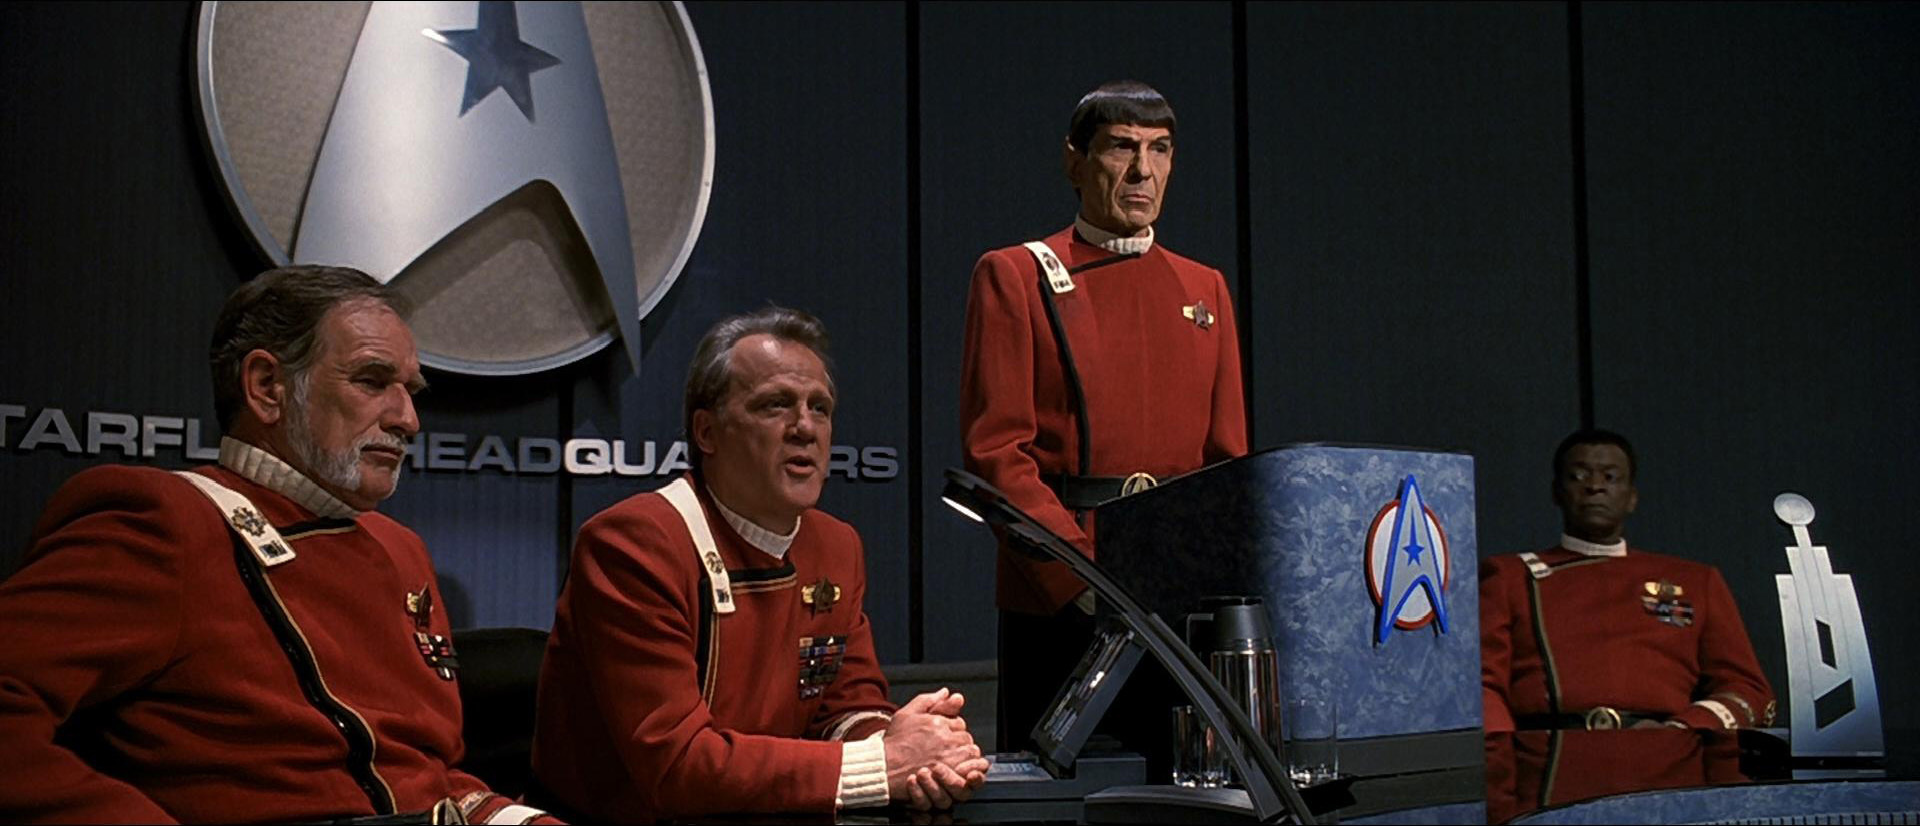 """23rd century """"liberals"""" and """"conservatives"""" clash in 'Star Trek VI: The Undiscovered Country'"""